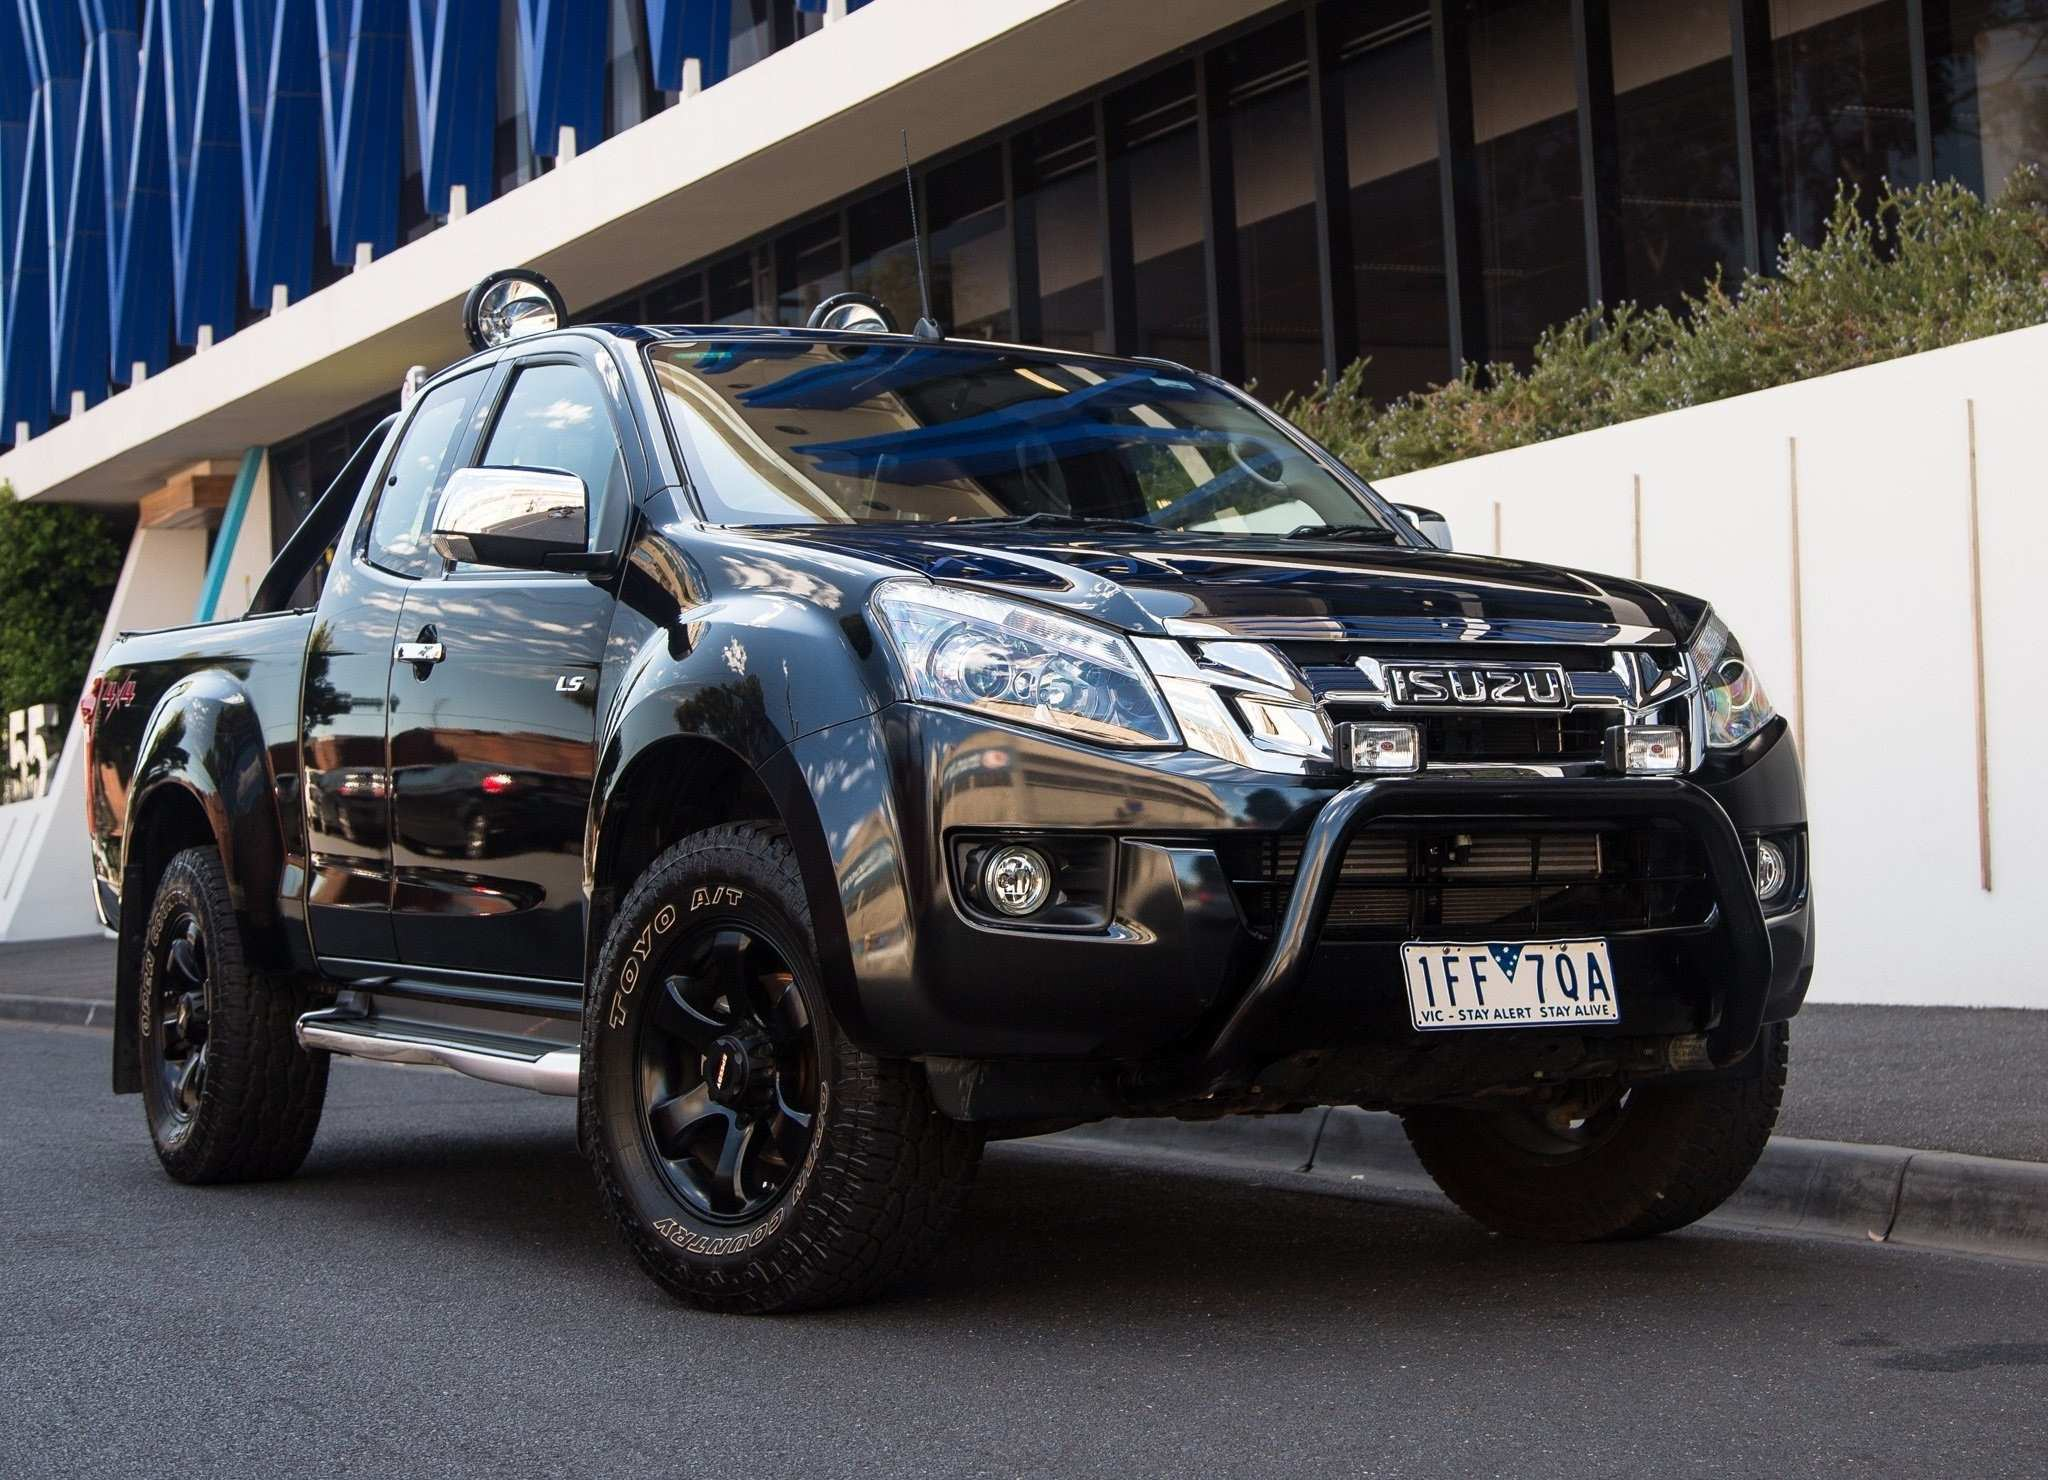 48 All New 2020 Isuzu Dmax Interior